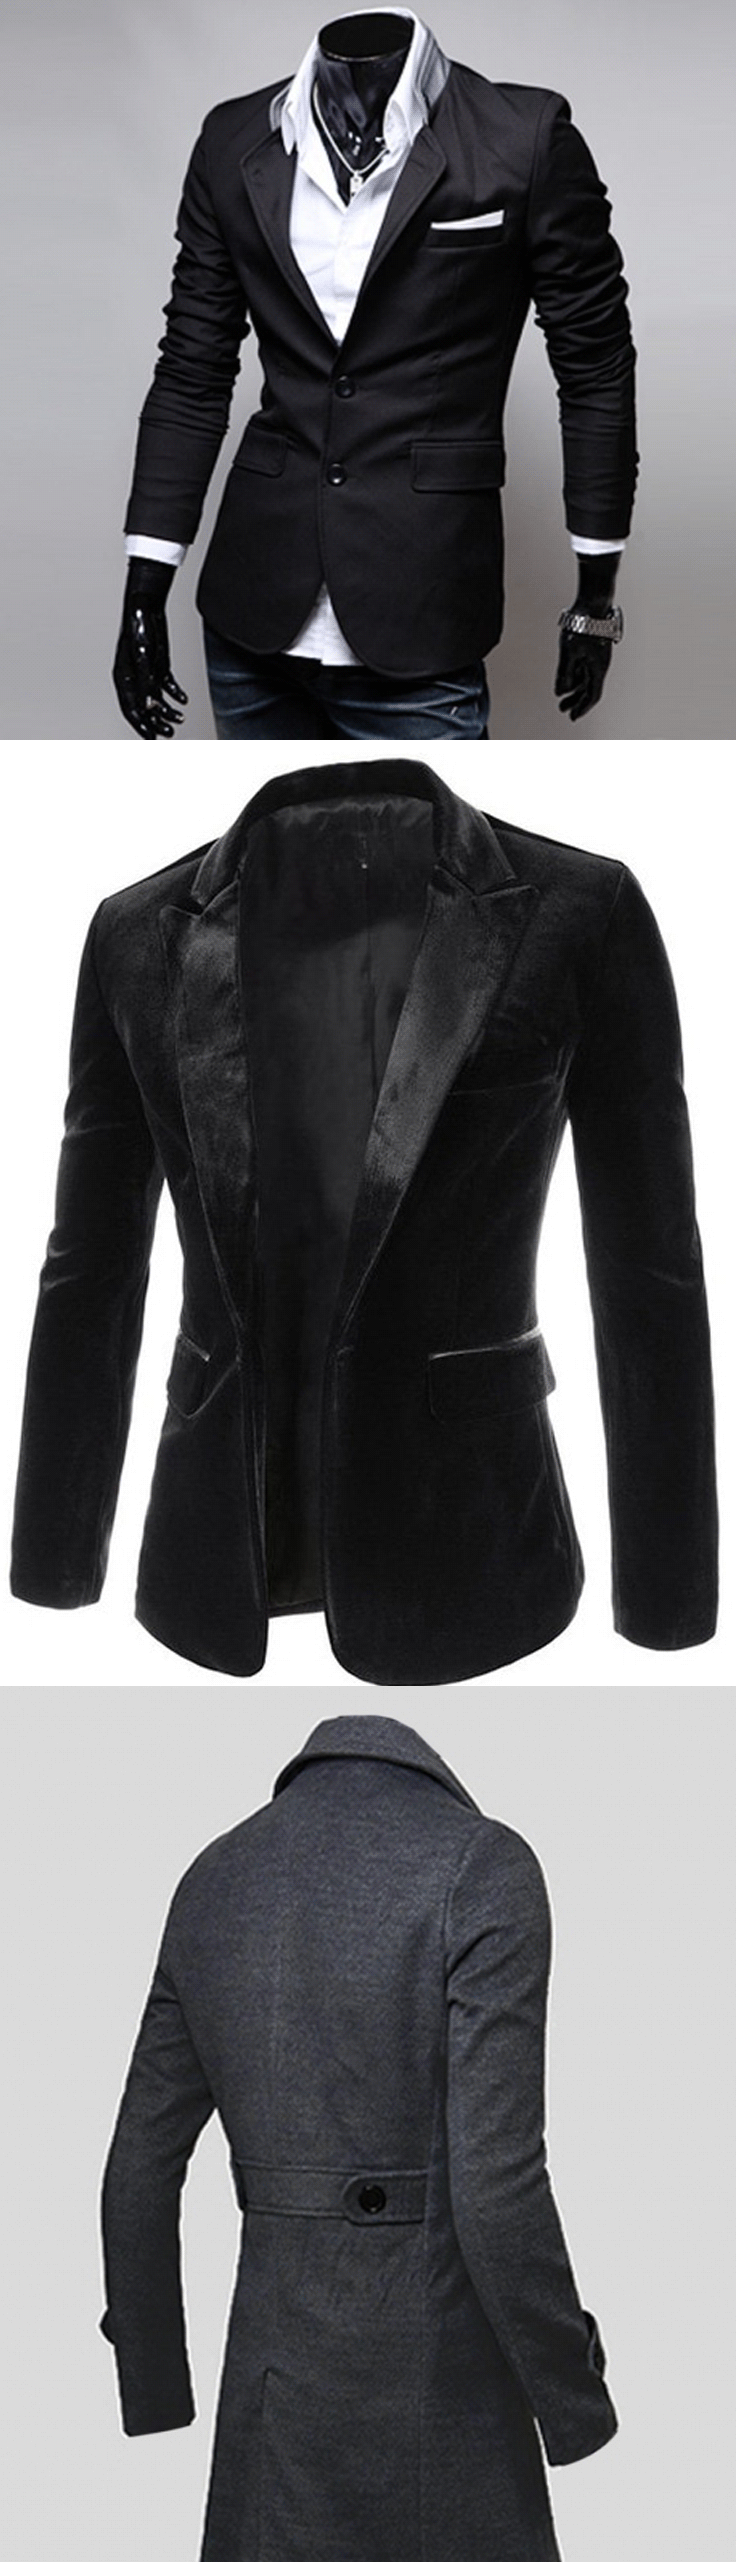 shop street goth blazers and coats for men at rebelsmarket